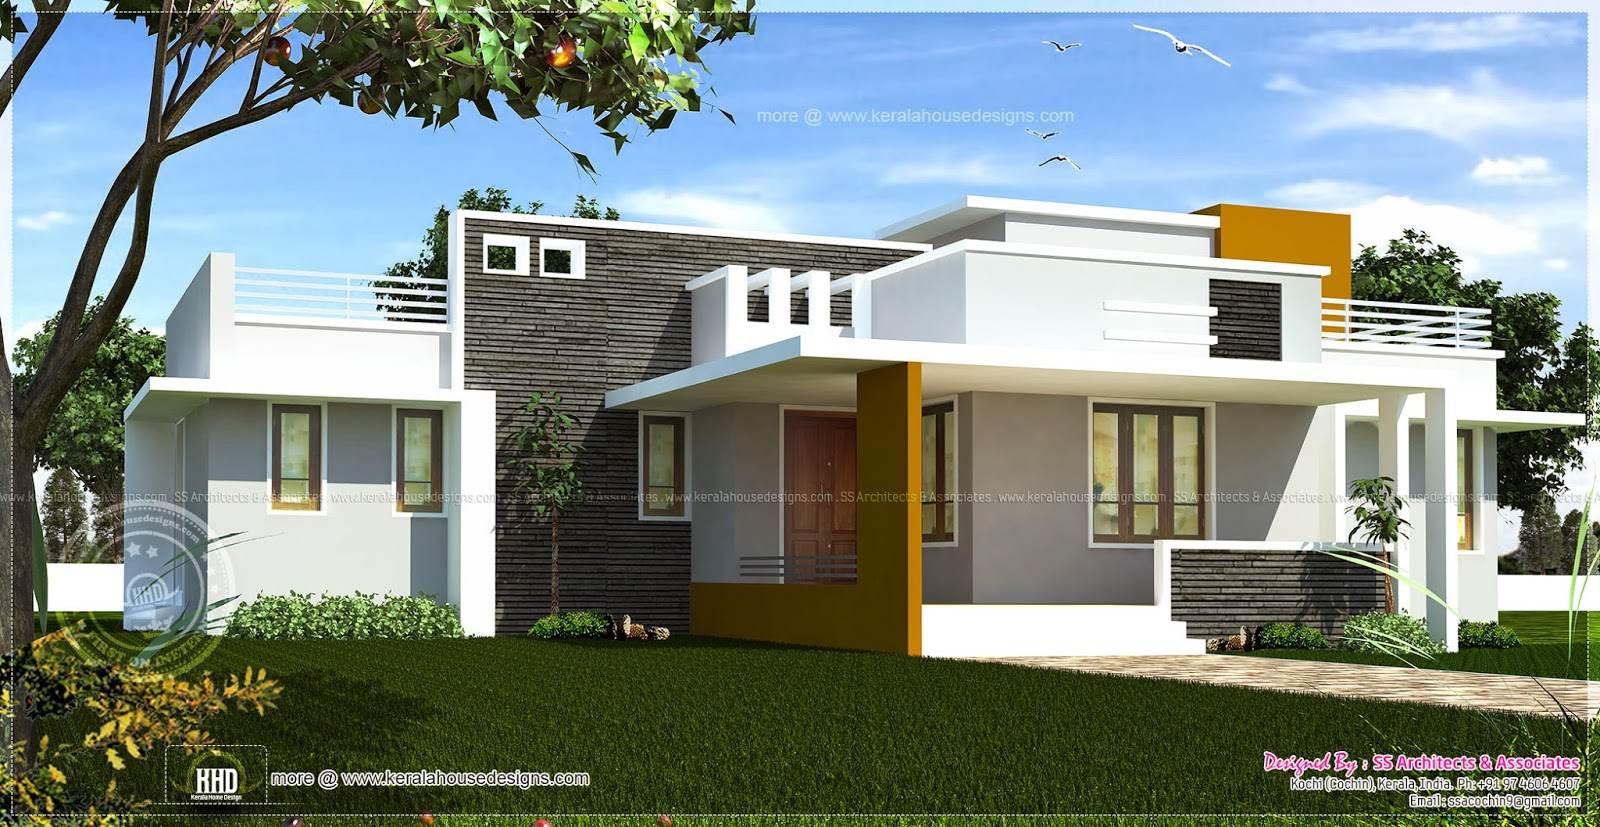 Single floor contemporary house design kerala home for Single floor house plans